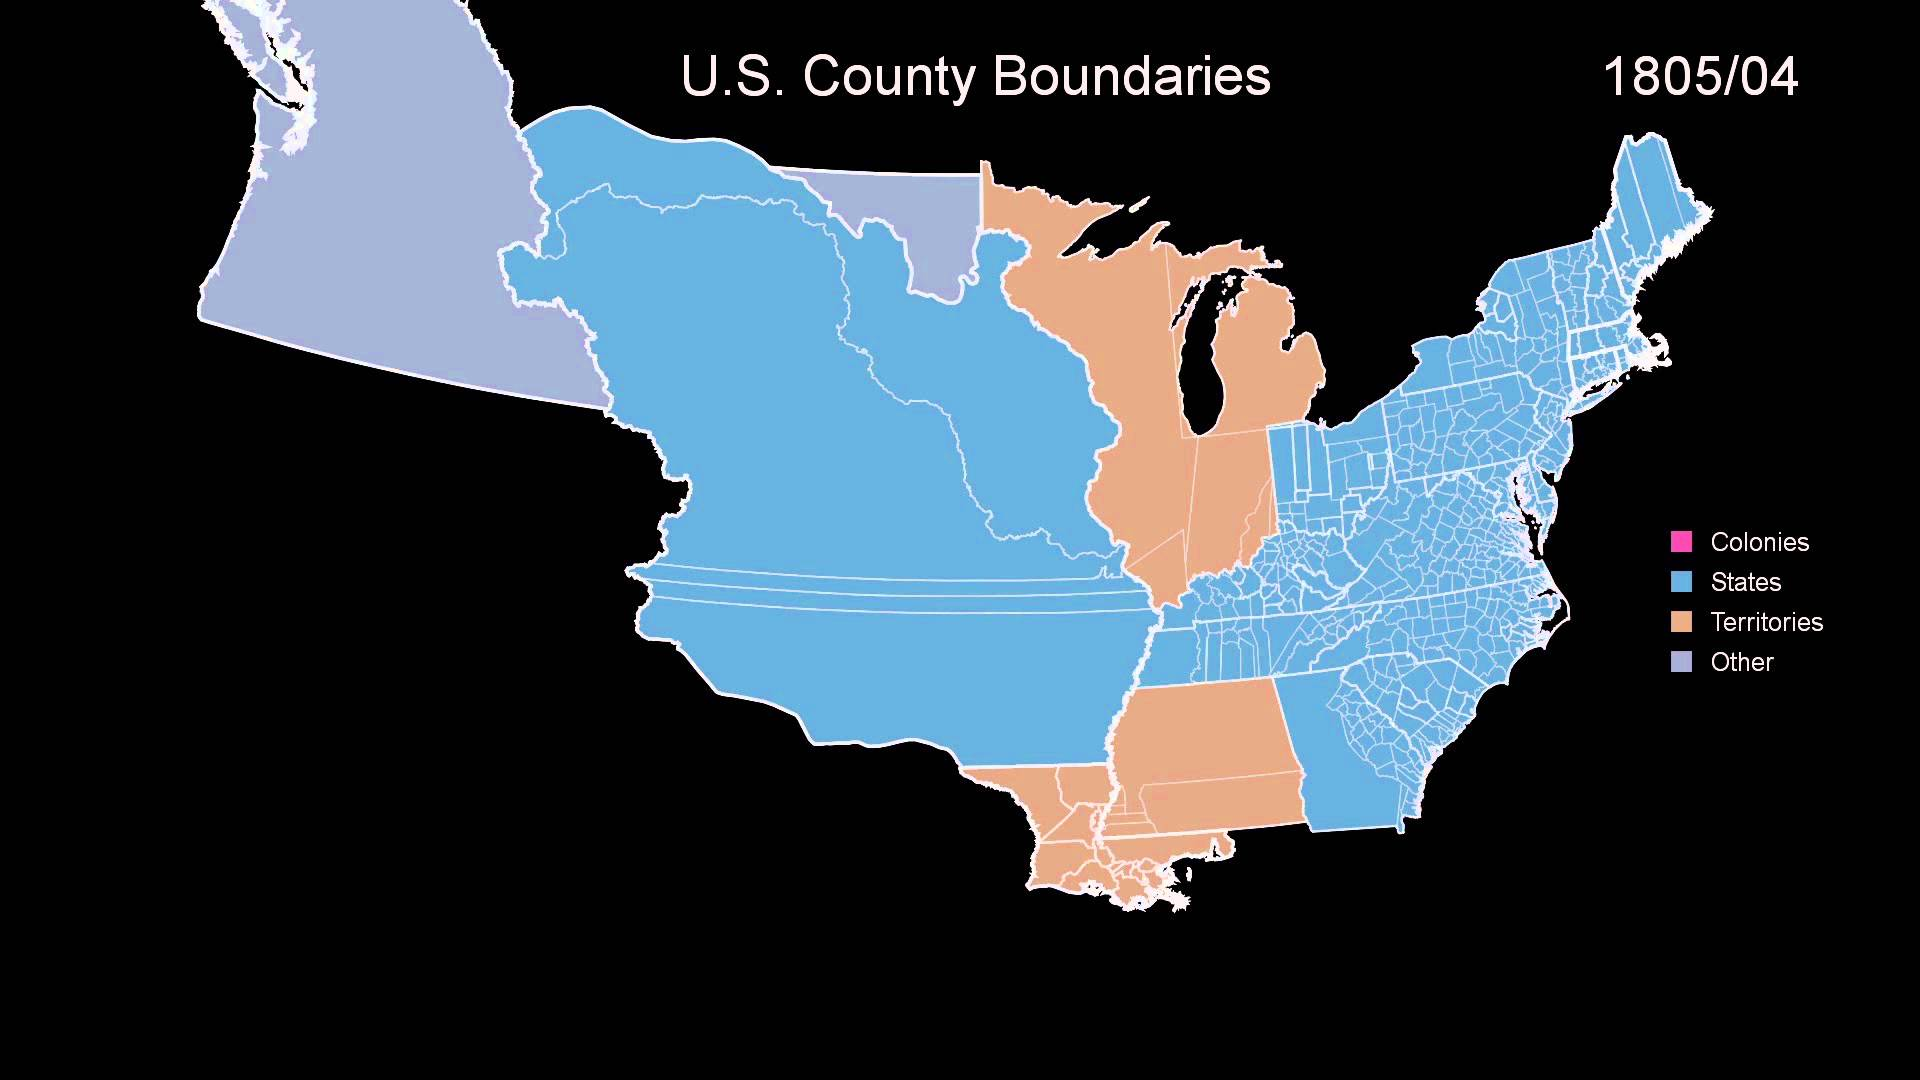 An Animated Timeline Showing The Border Changes Of The - Time changes in us